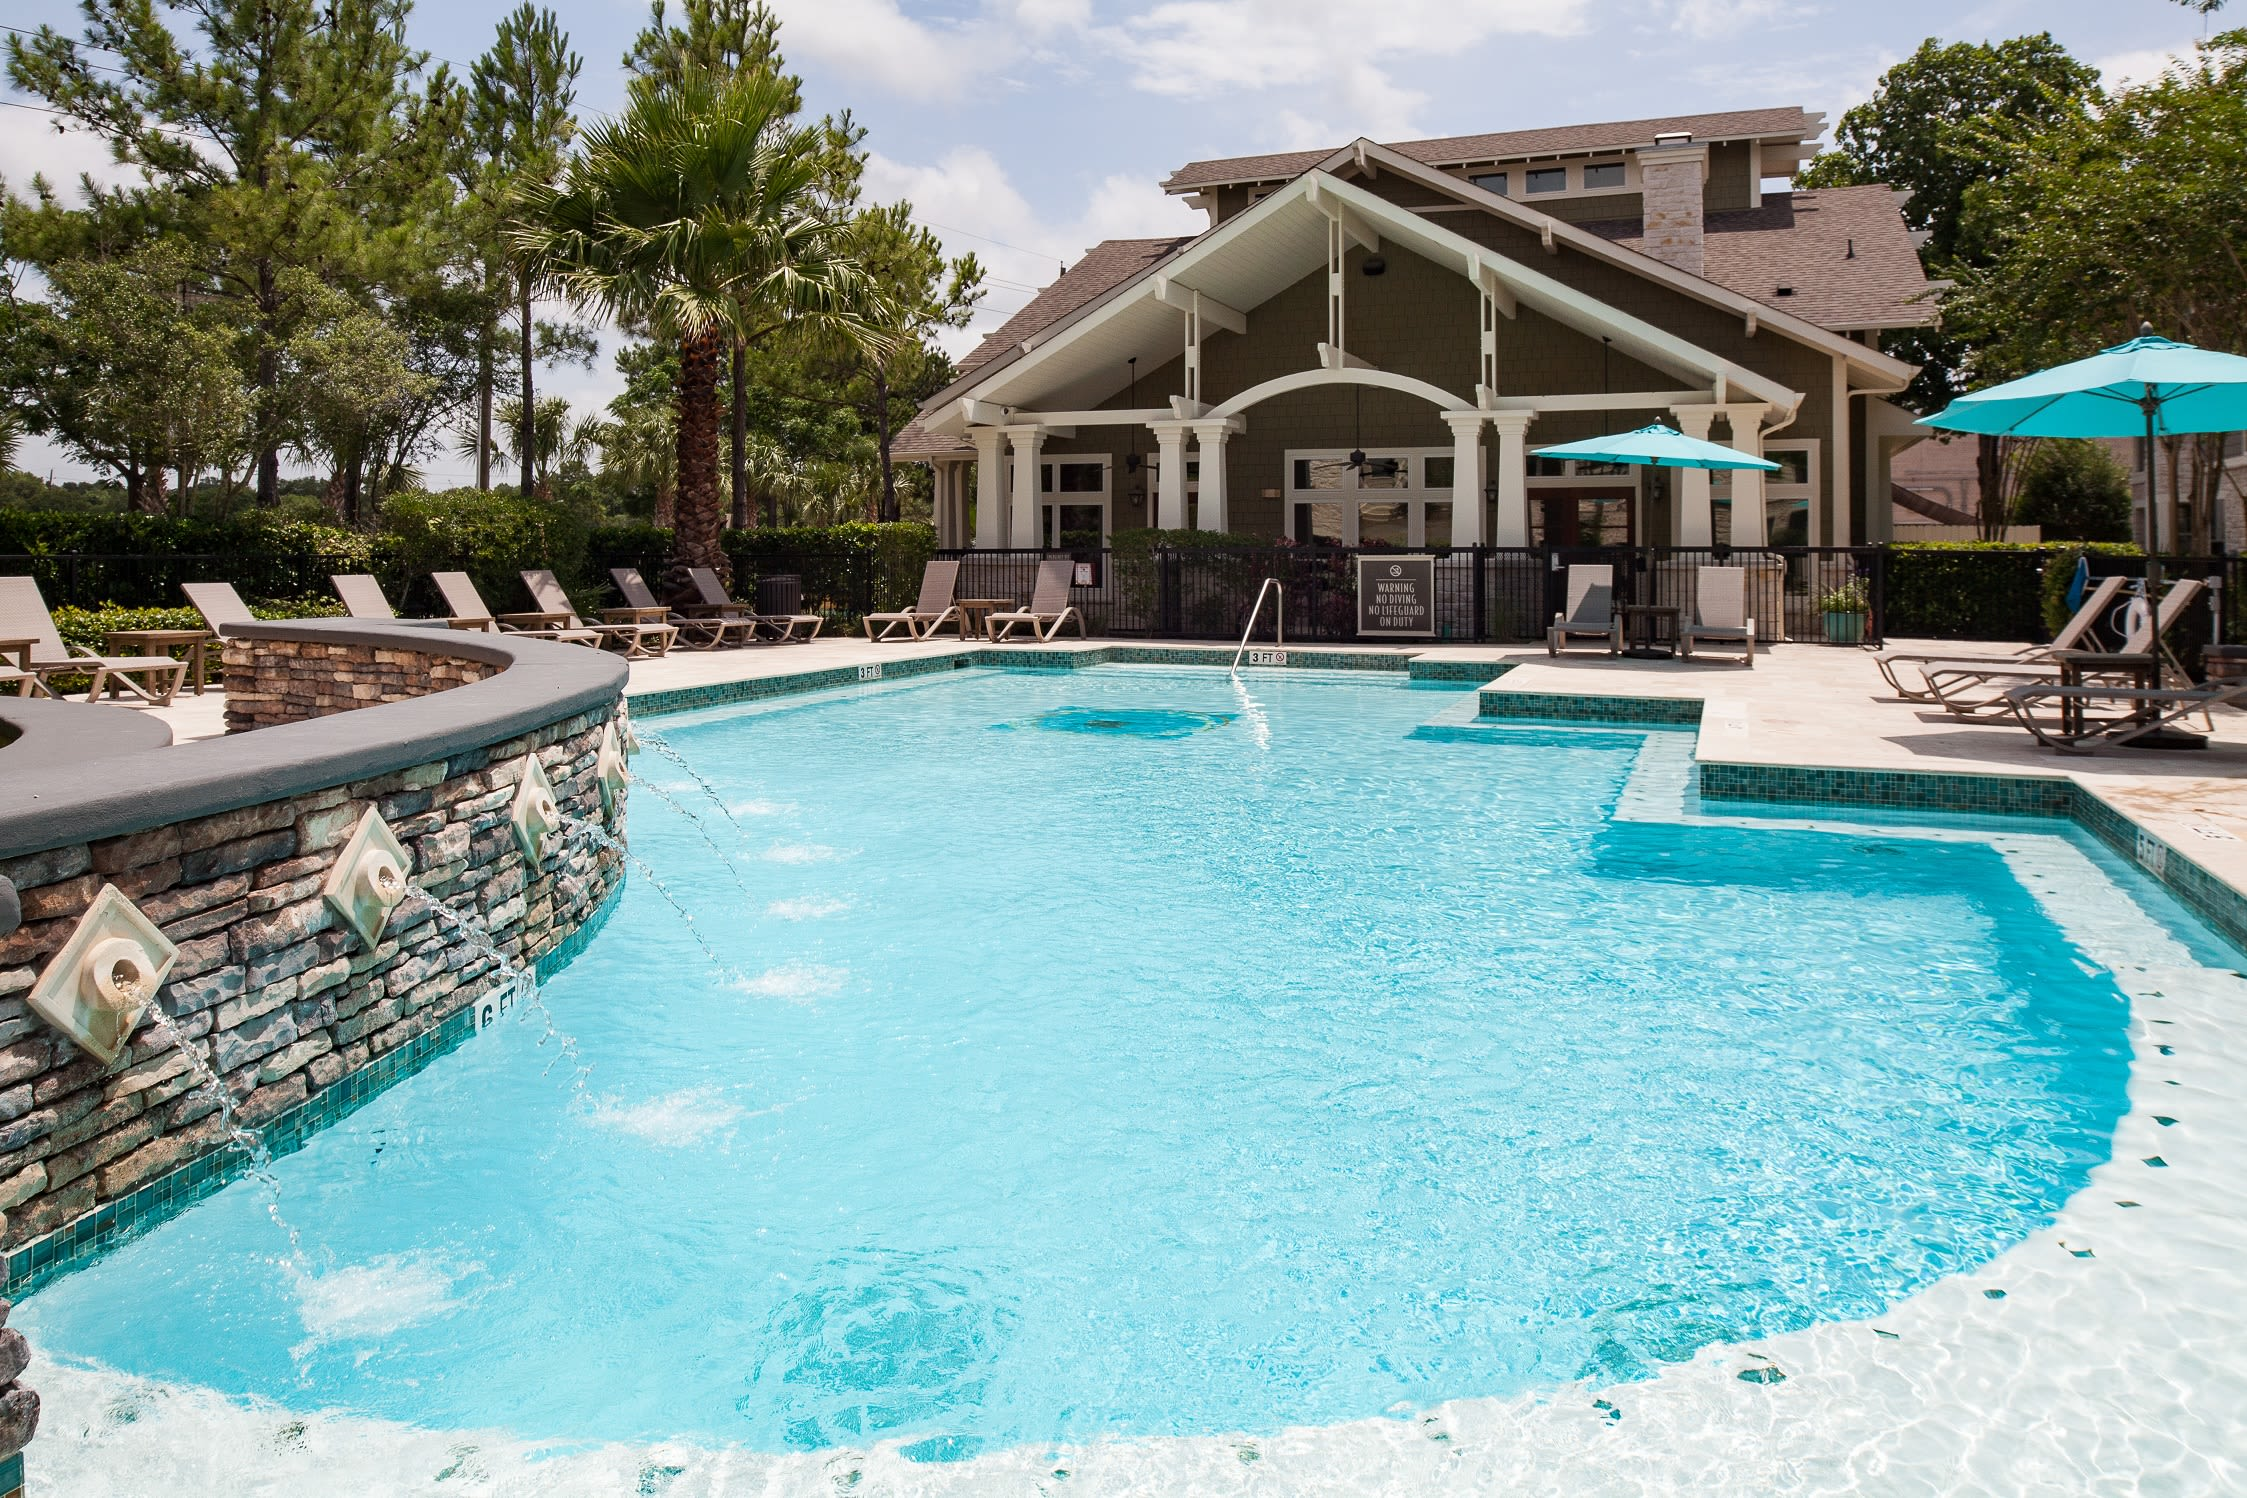 Fountains in the outdoor pool at Lakefront Villas in Houston, Texas